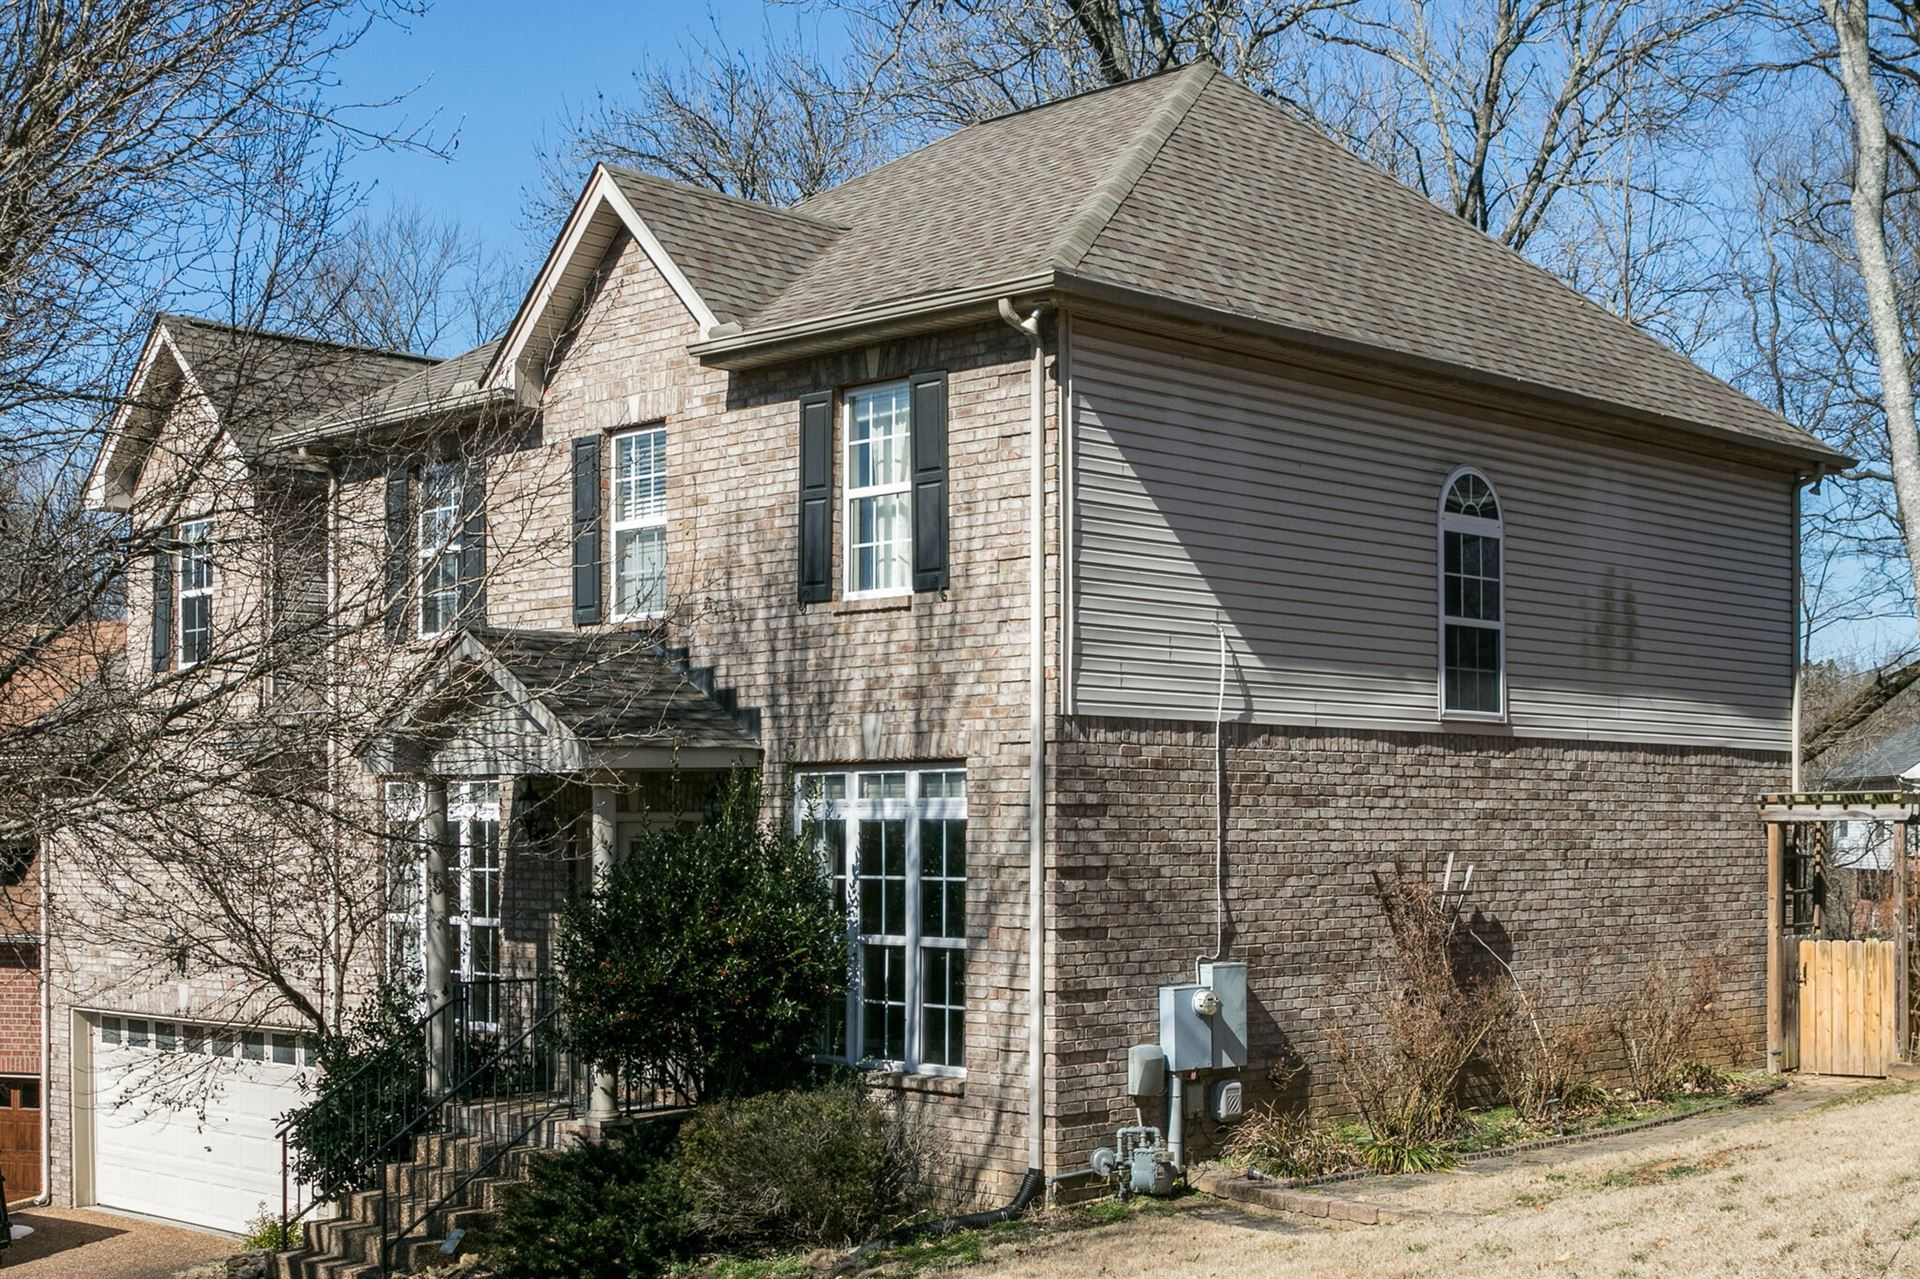 1236 Andrew Donelson Dr, Hermitage, TN 37076 - MLS#: 2231547